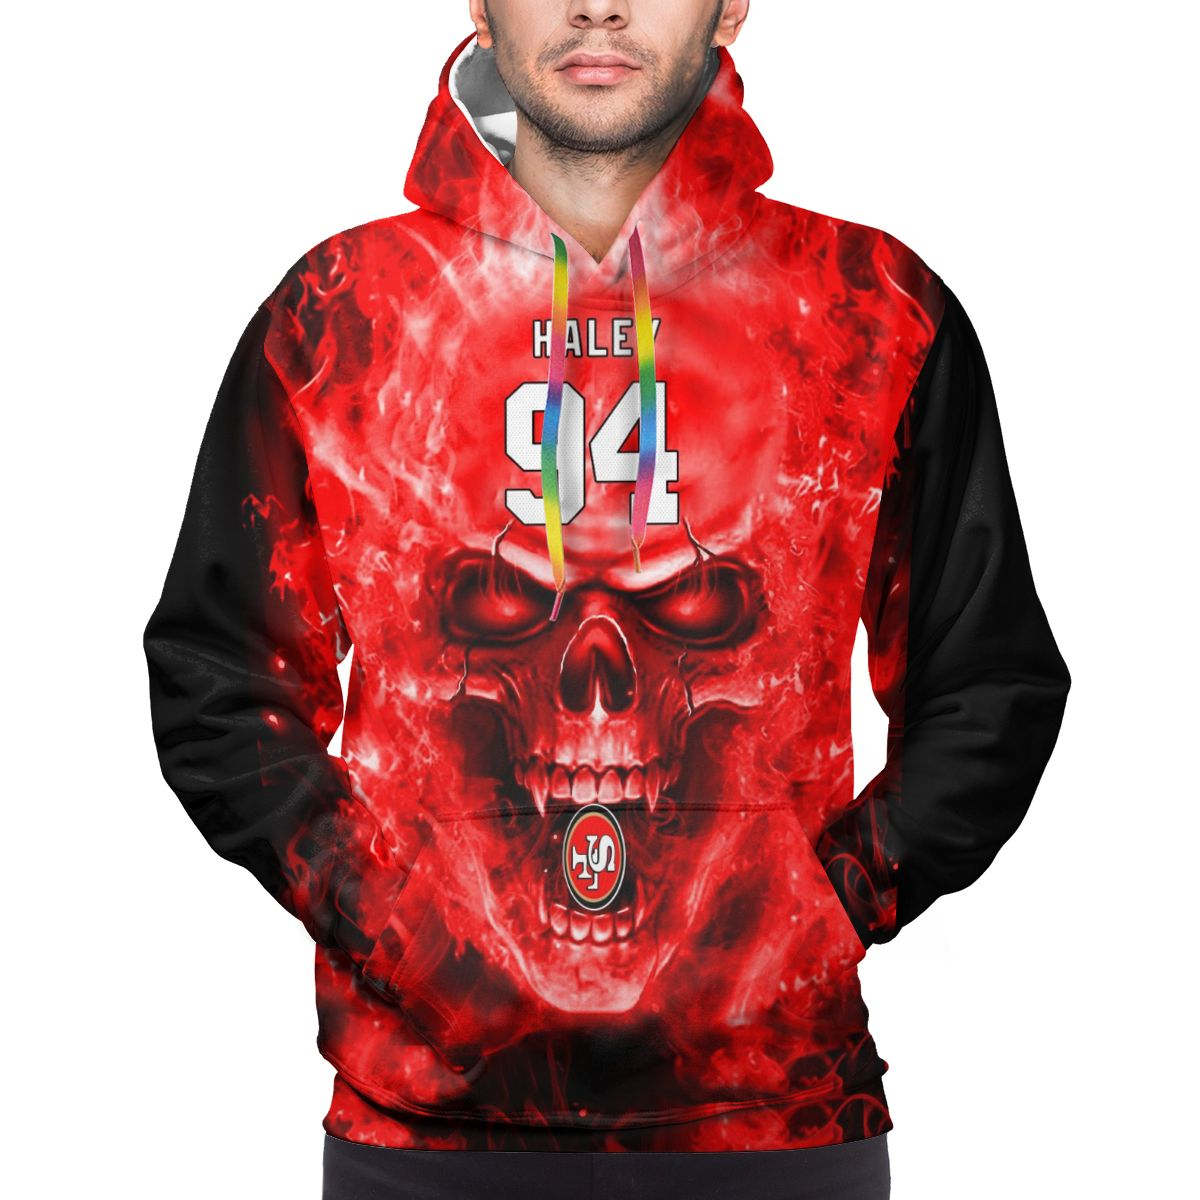 3D Skull 49ers #94 Charles Haley Logo Print Hoodies For Men Pullover Sweatshirt